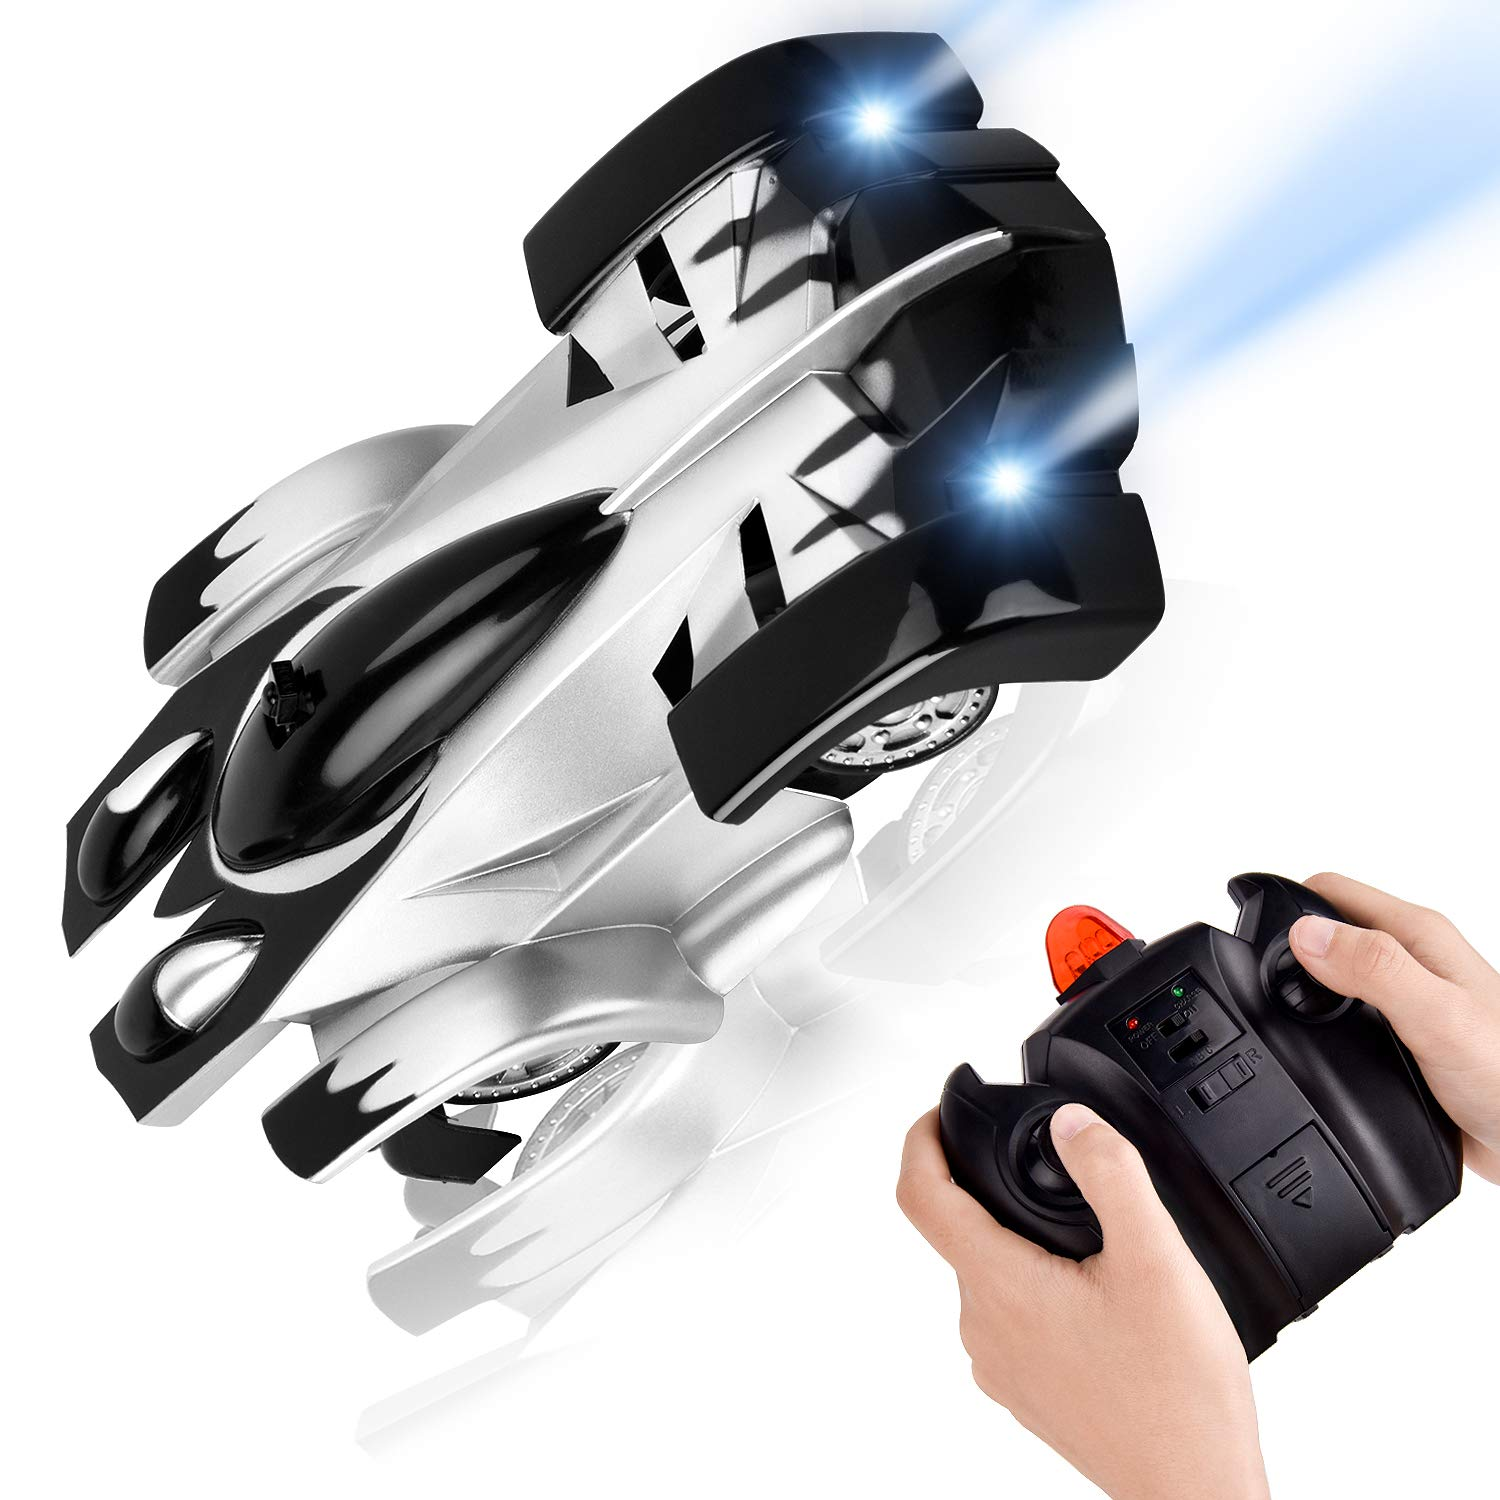 Rechargeable High Speed Mini Toy Car for Boys Kids Adults Gifts RC Car Flyglobal Remote Control Car 360/°Rotating Wall Climbing Gravity Defying Mini Toy Car with Head and Rear LED Lights